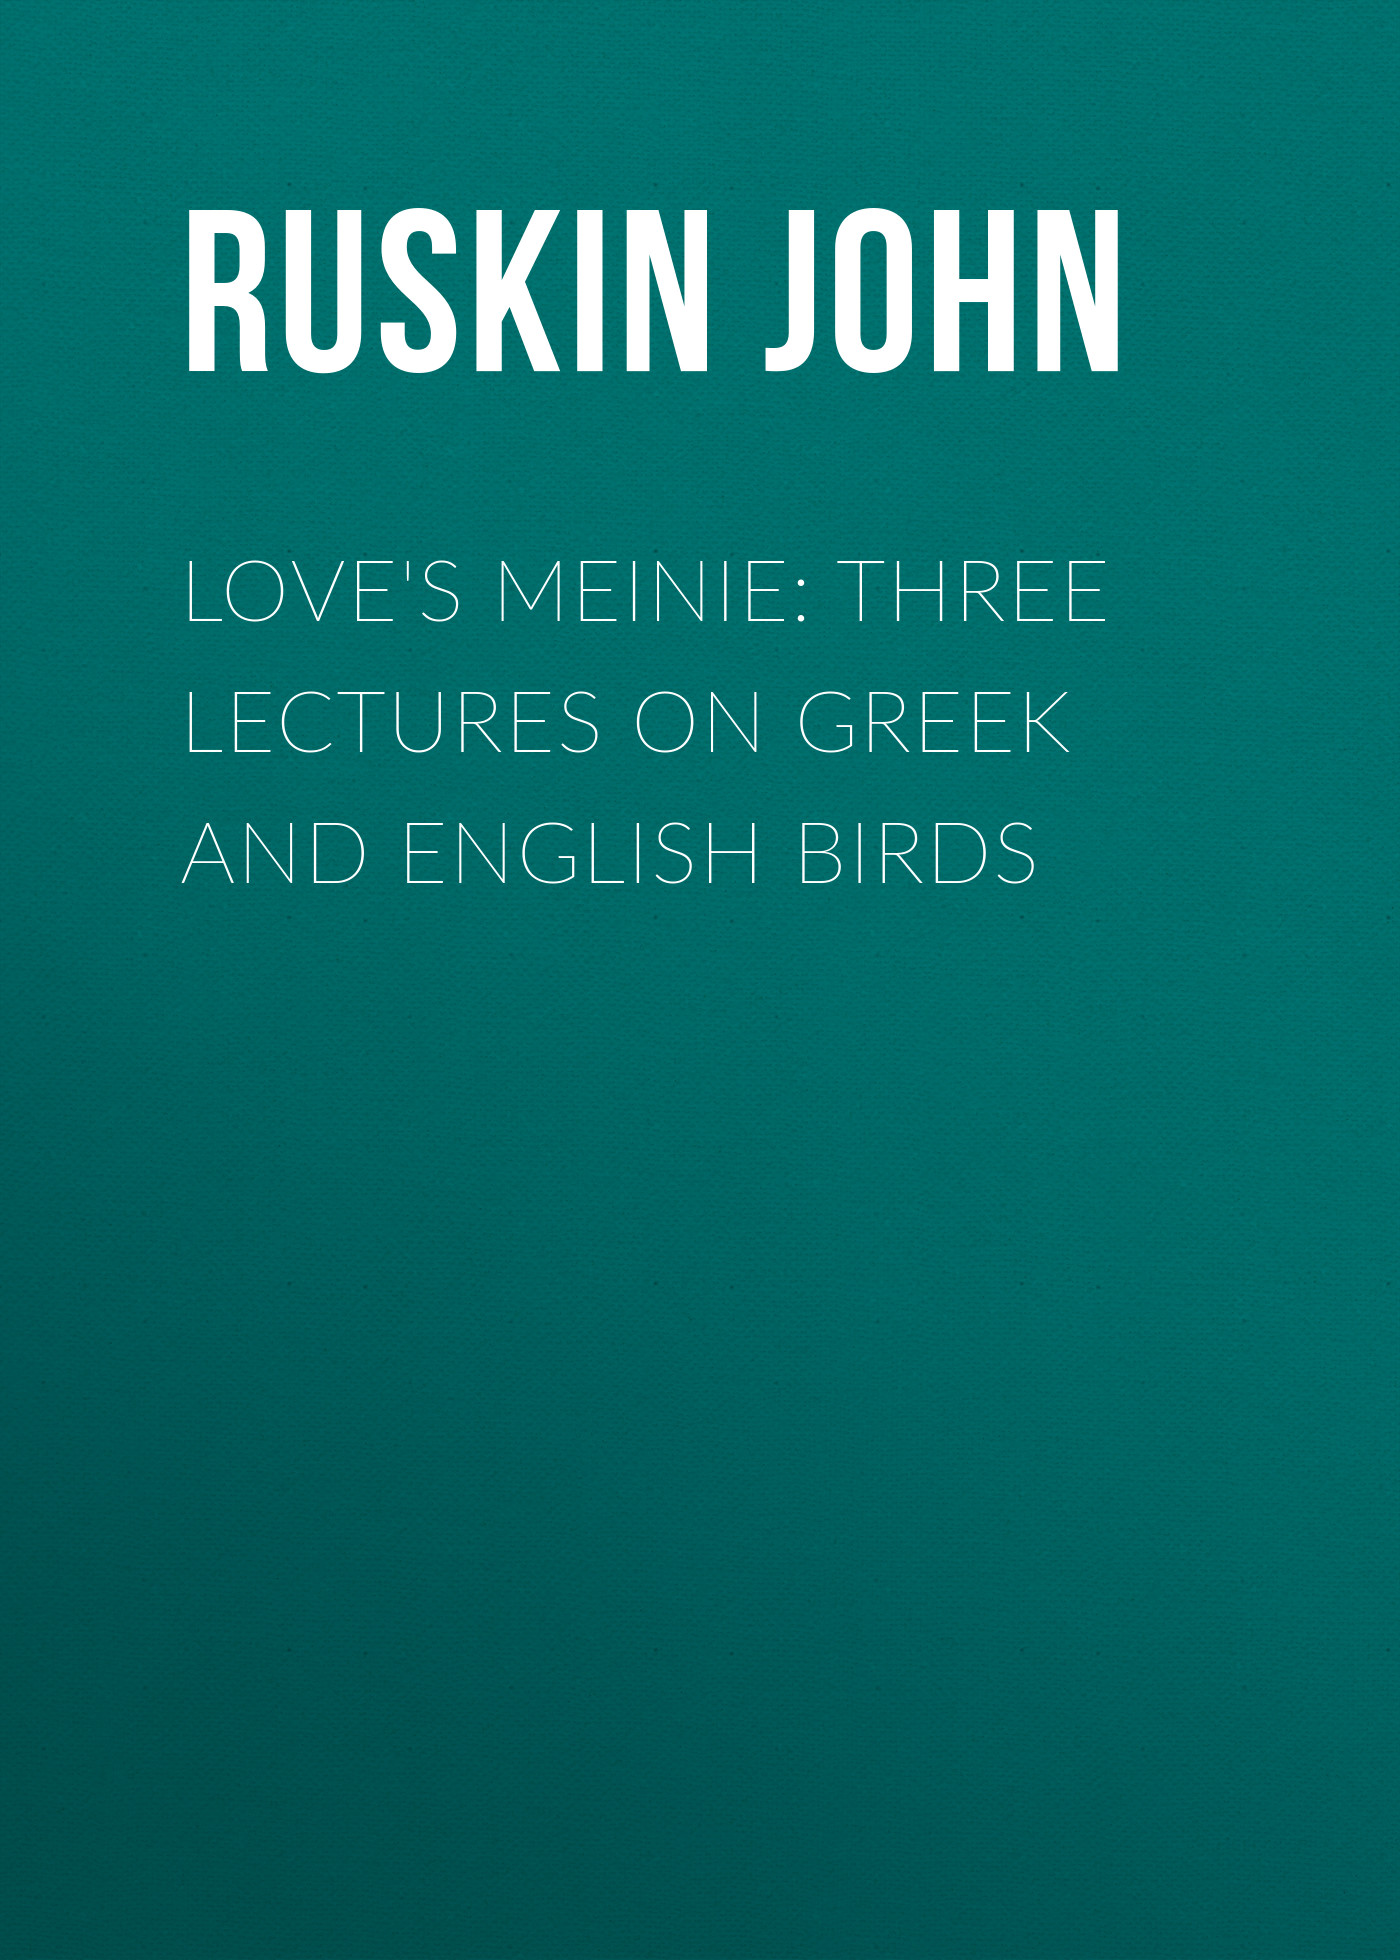 Ruskin John Love's Meinie: Three Lectures on Greek and English Birds